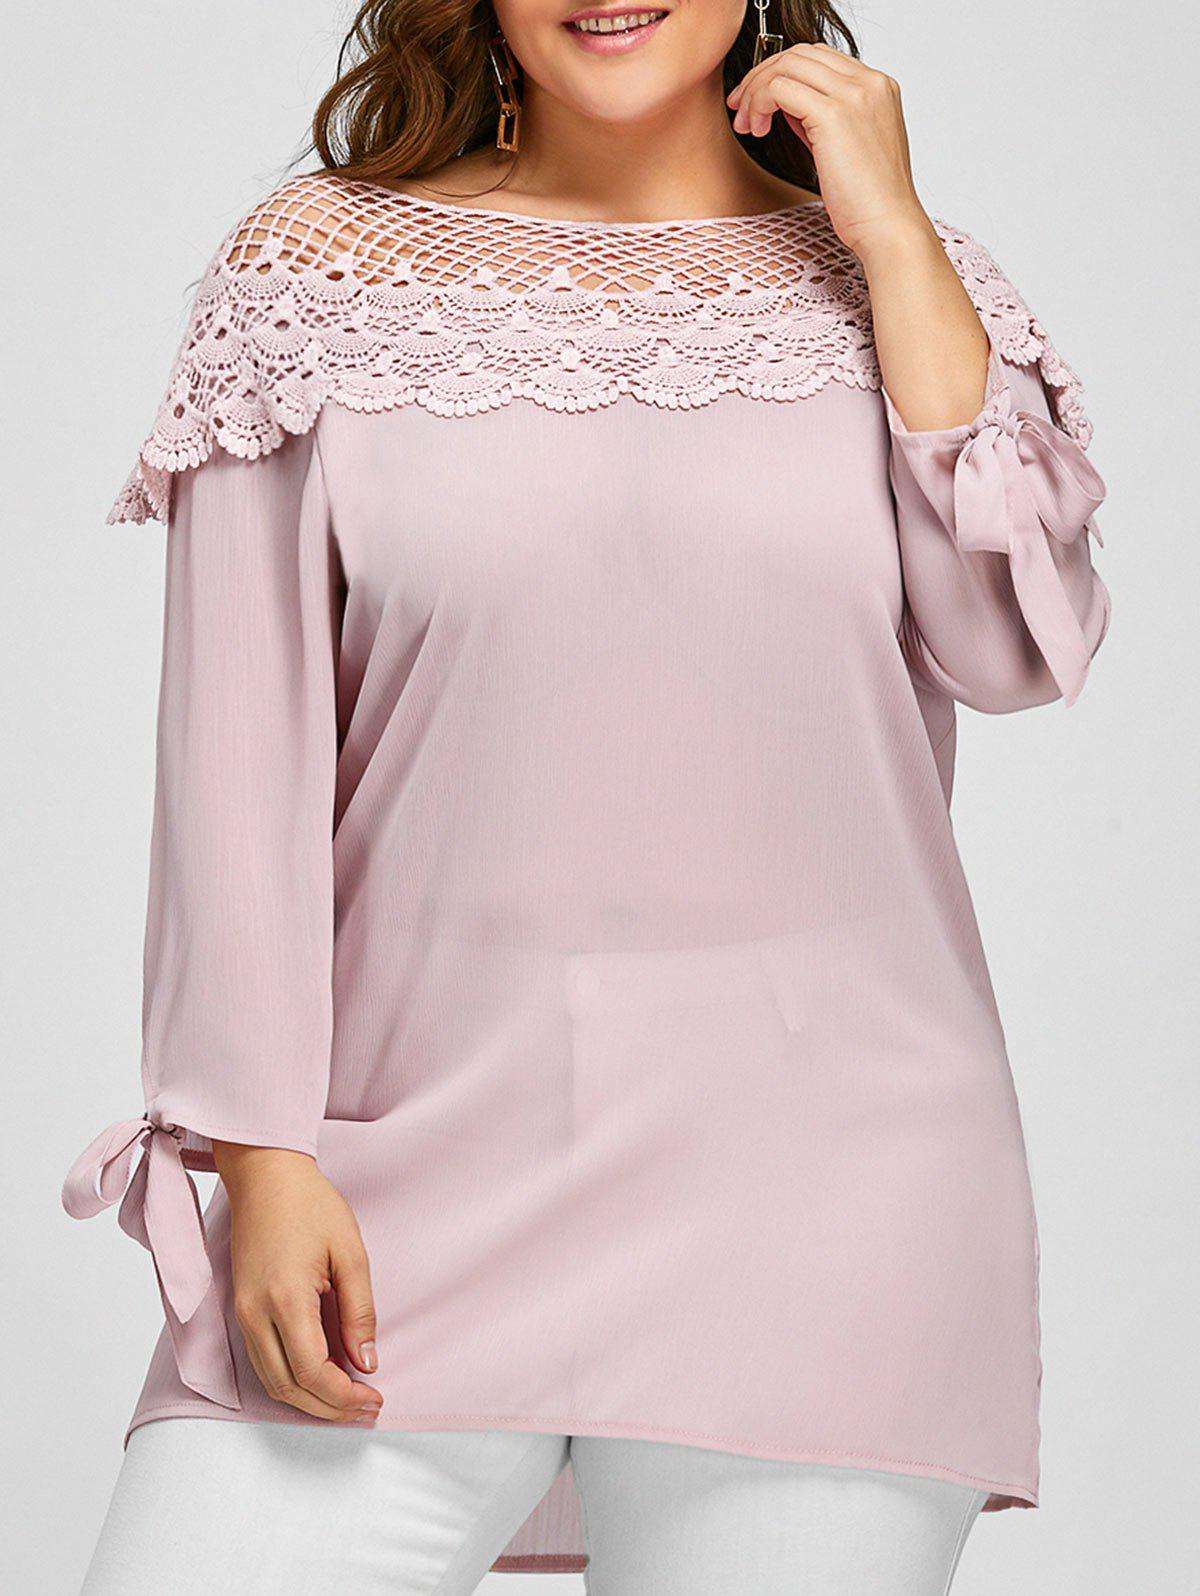 Plus Size Floral Crochet Boat Neck BlouseWOMEN<br><br>Size: 4XL; Color: CAMEO; Material: Polyester; Shirt Length: Regular; Sleeve Length: Full; Collar: Boat Neck; Style: Fashion; Season: Fall; Embellishment: Lace; Pattern Type: Solid; Weight: 0.2600kg; Package Contents: 1 x Blouse;